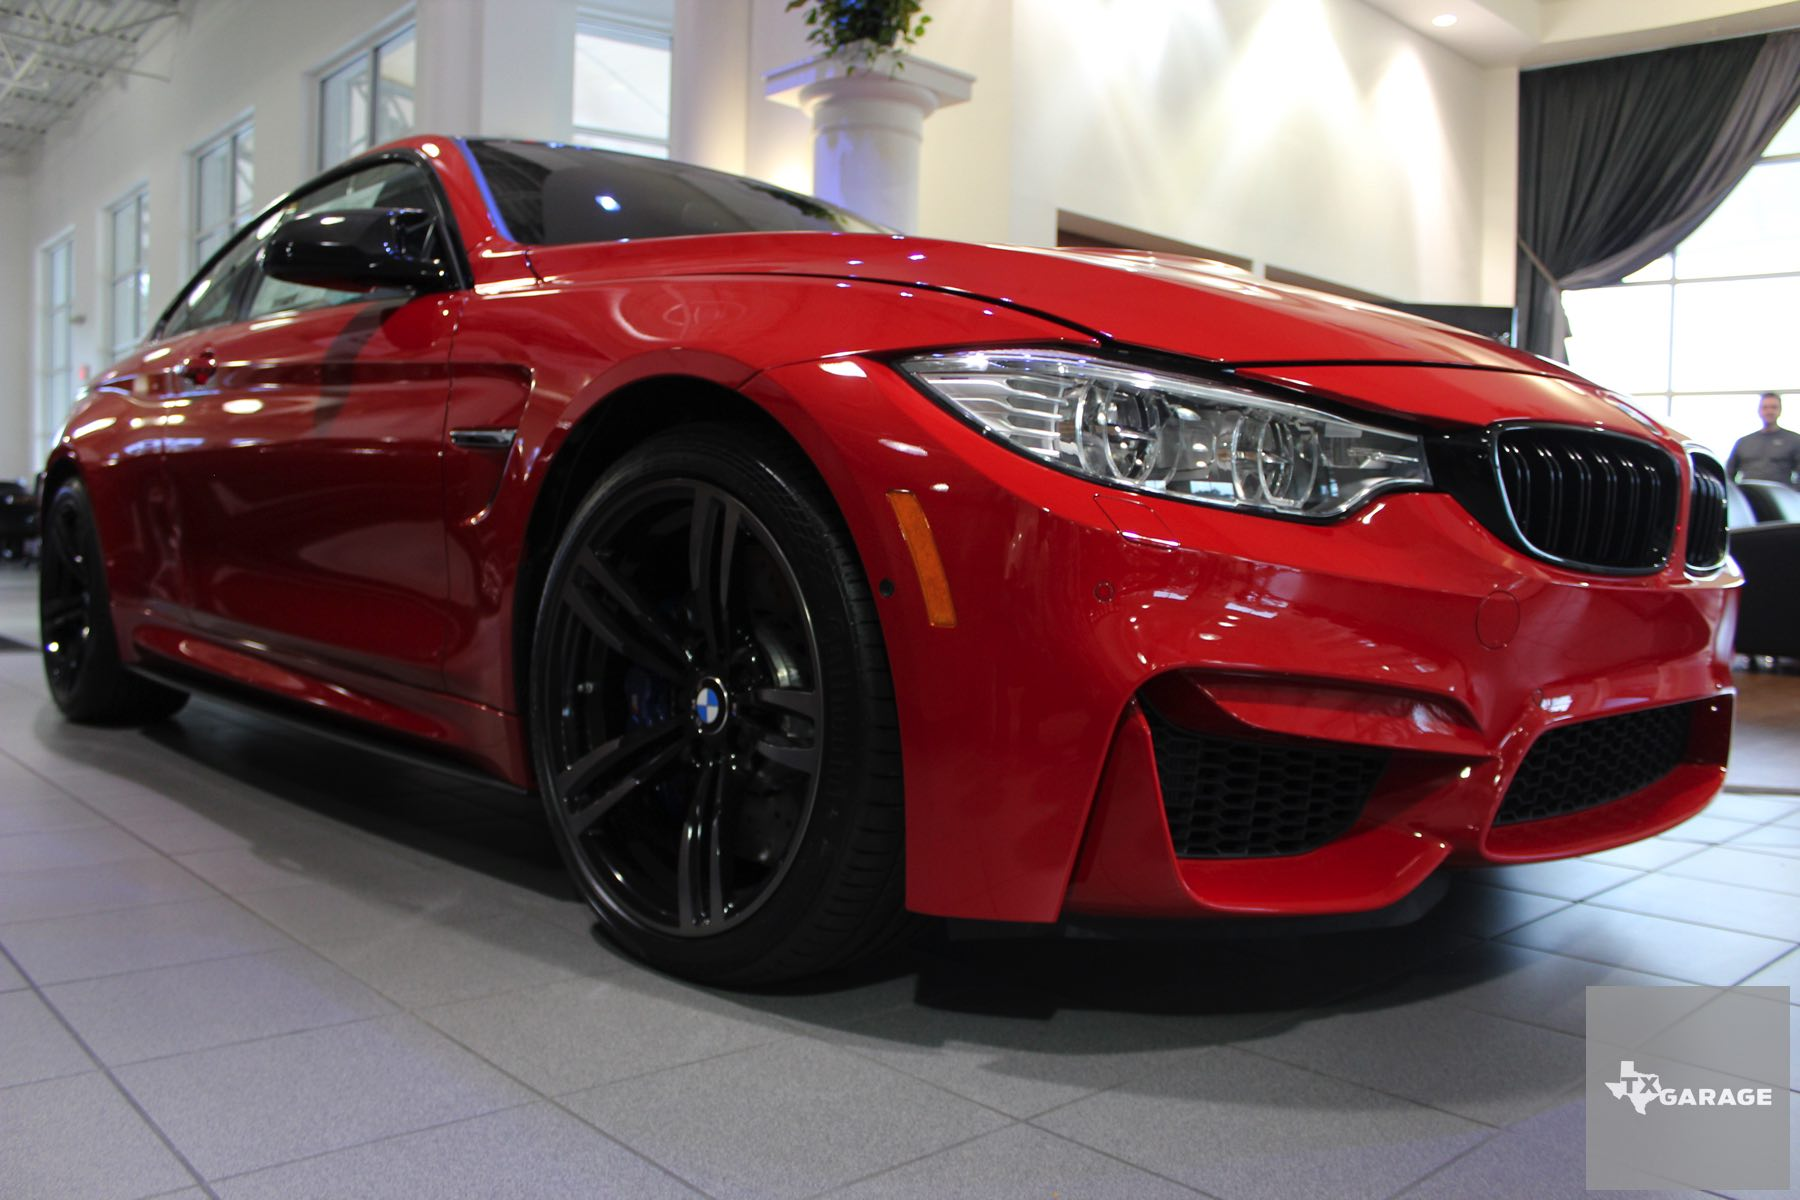 2016 BMW M4 Coupe Ferrari Red